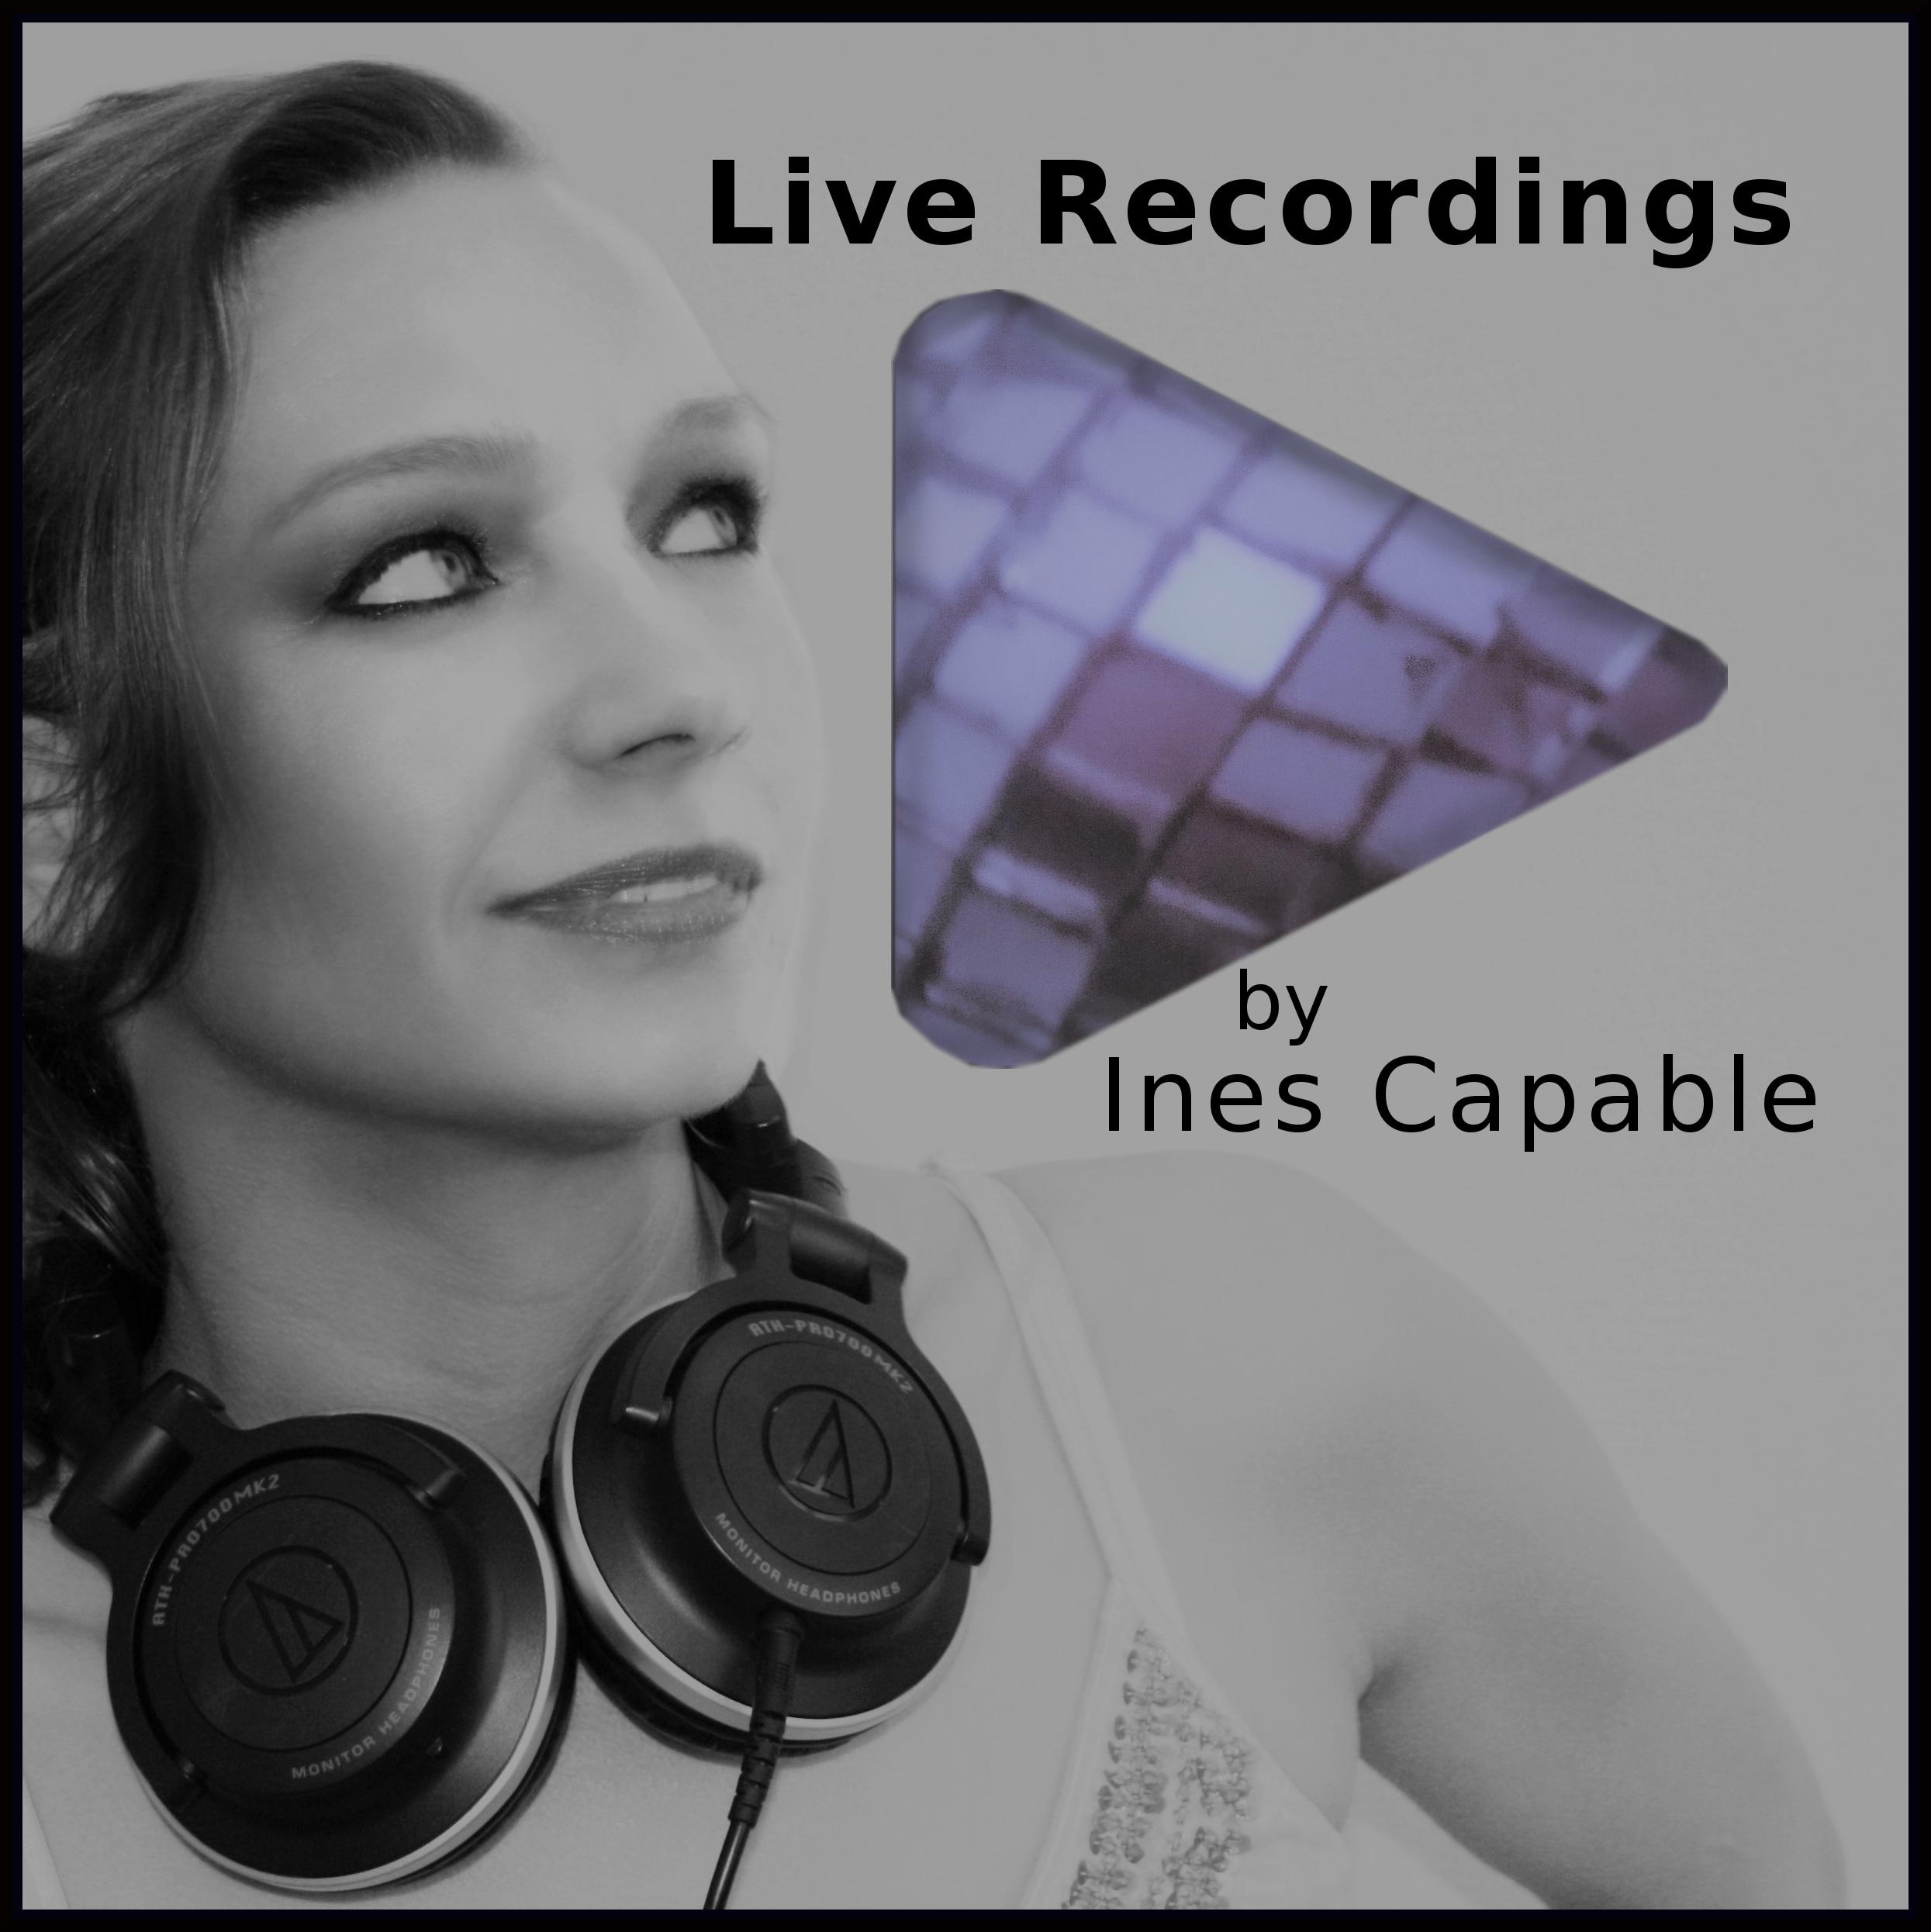 LiveRecordings by Ines Capable